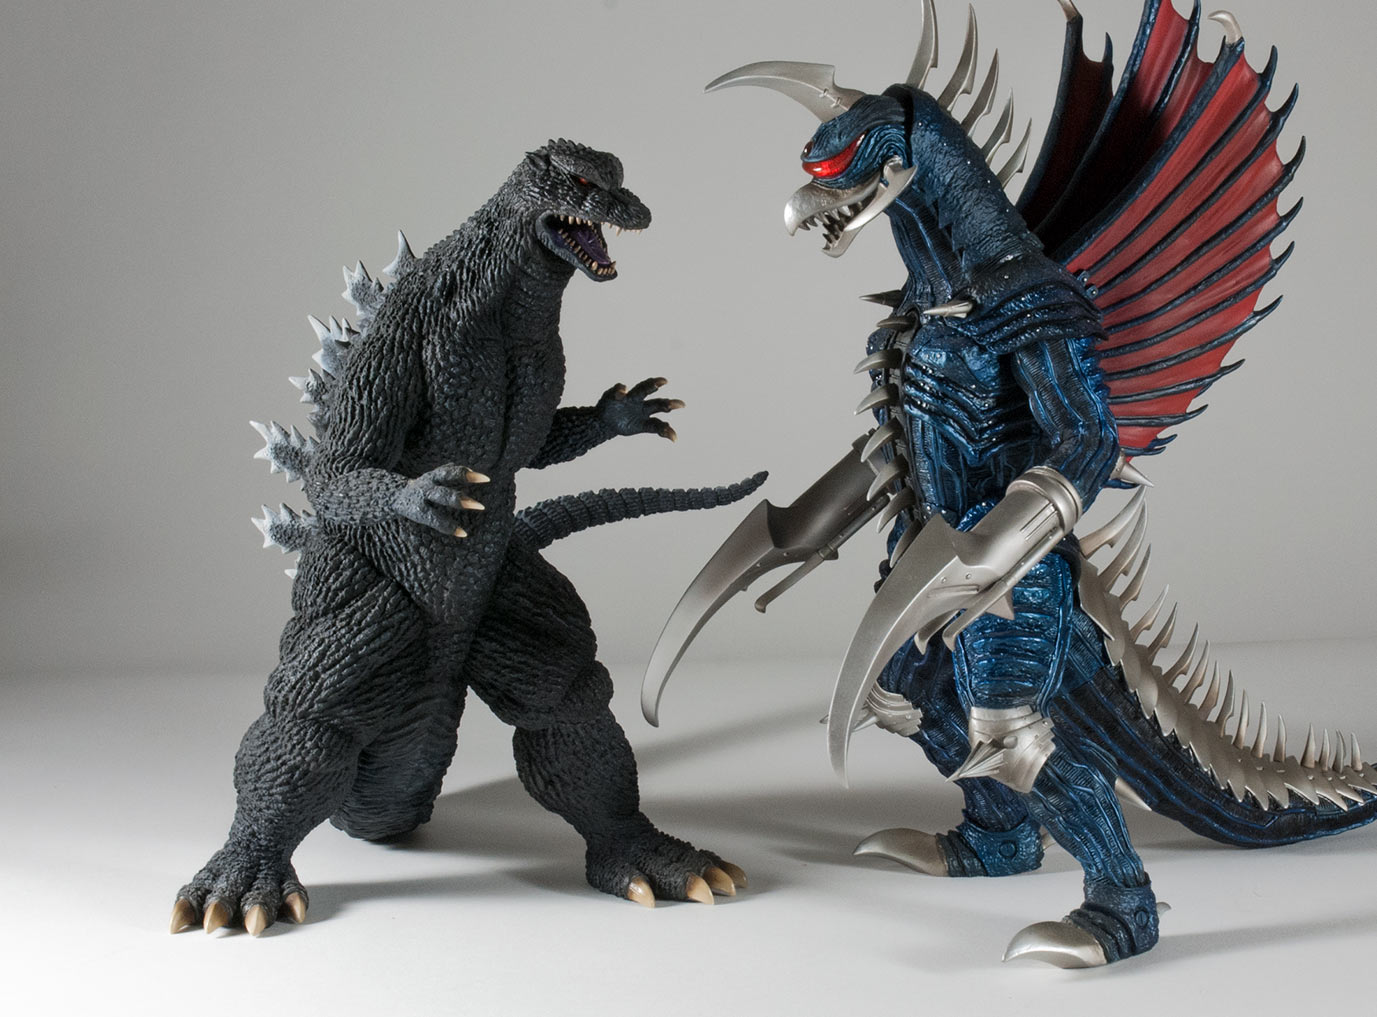 X-Plus 30cm Series Godzilla and Gigan 2004.